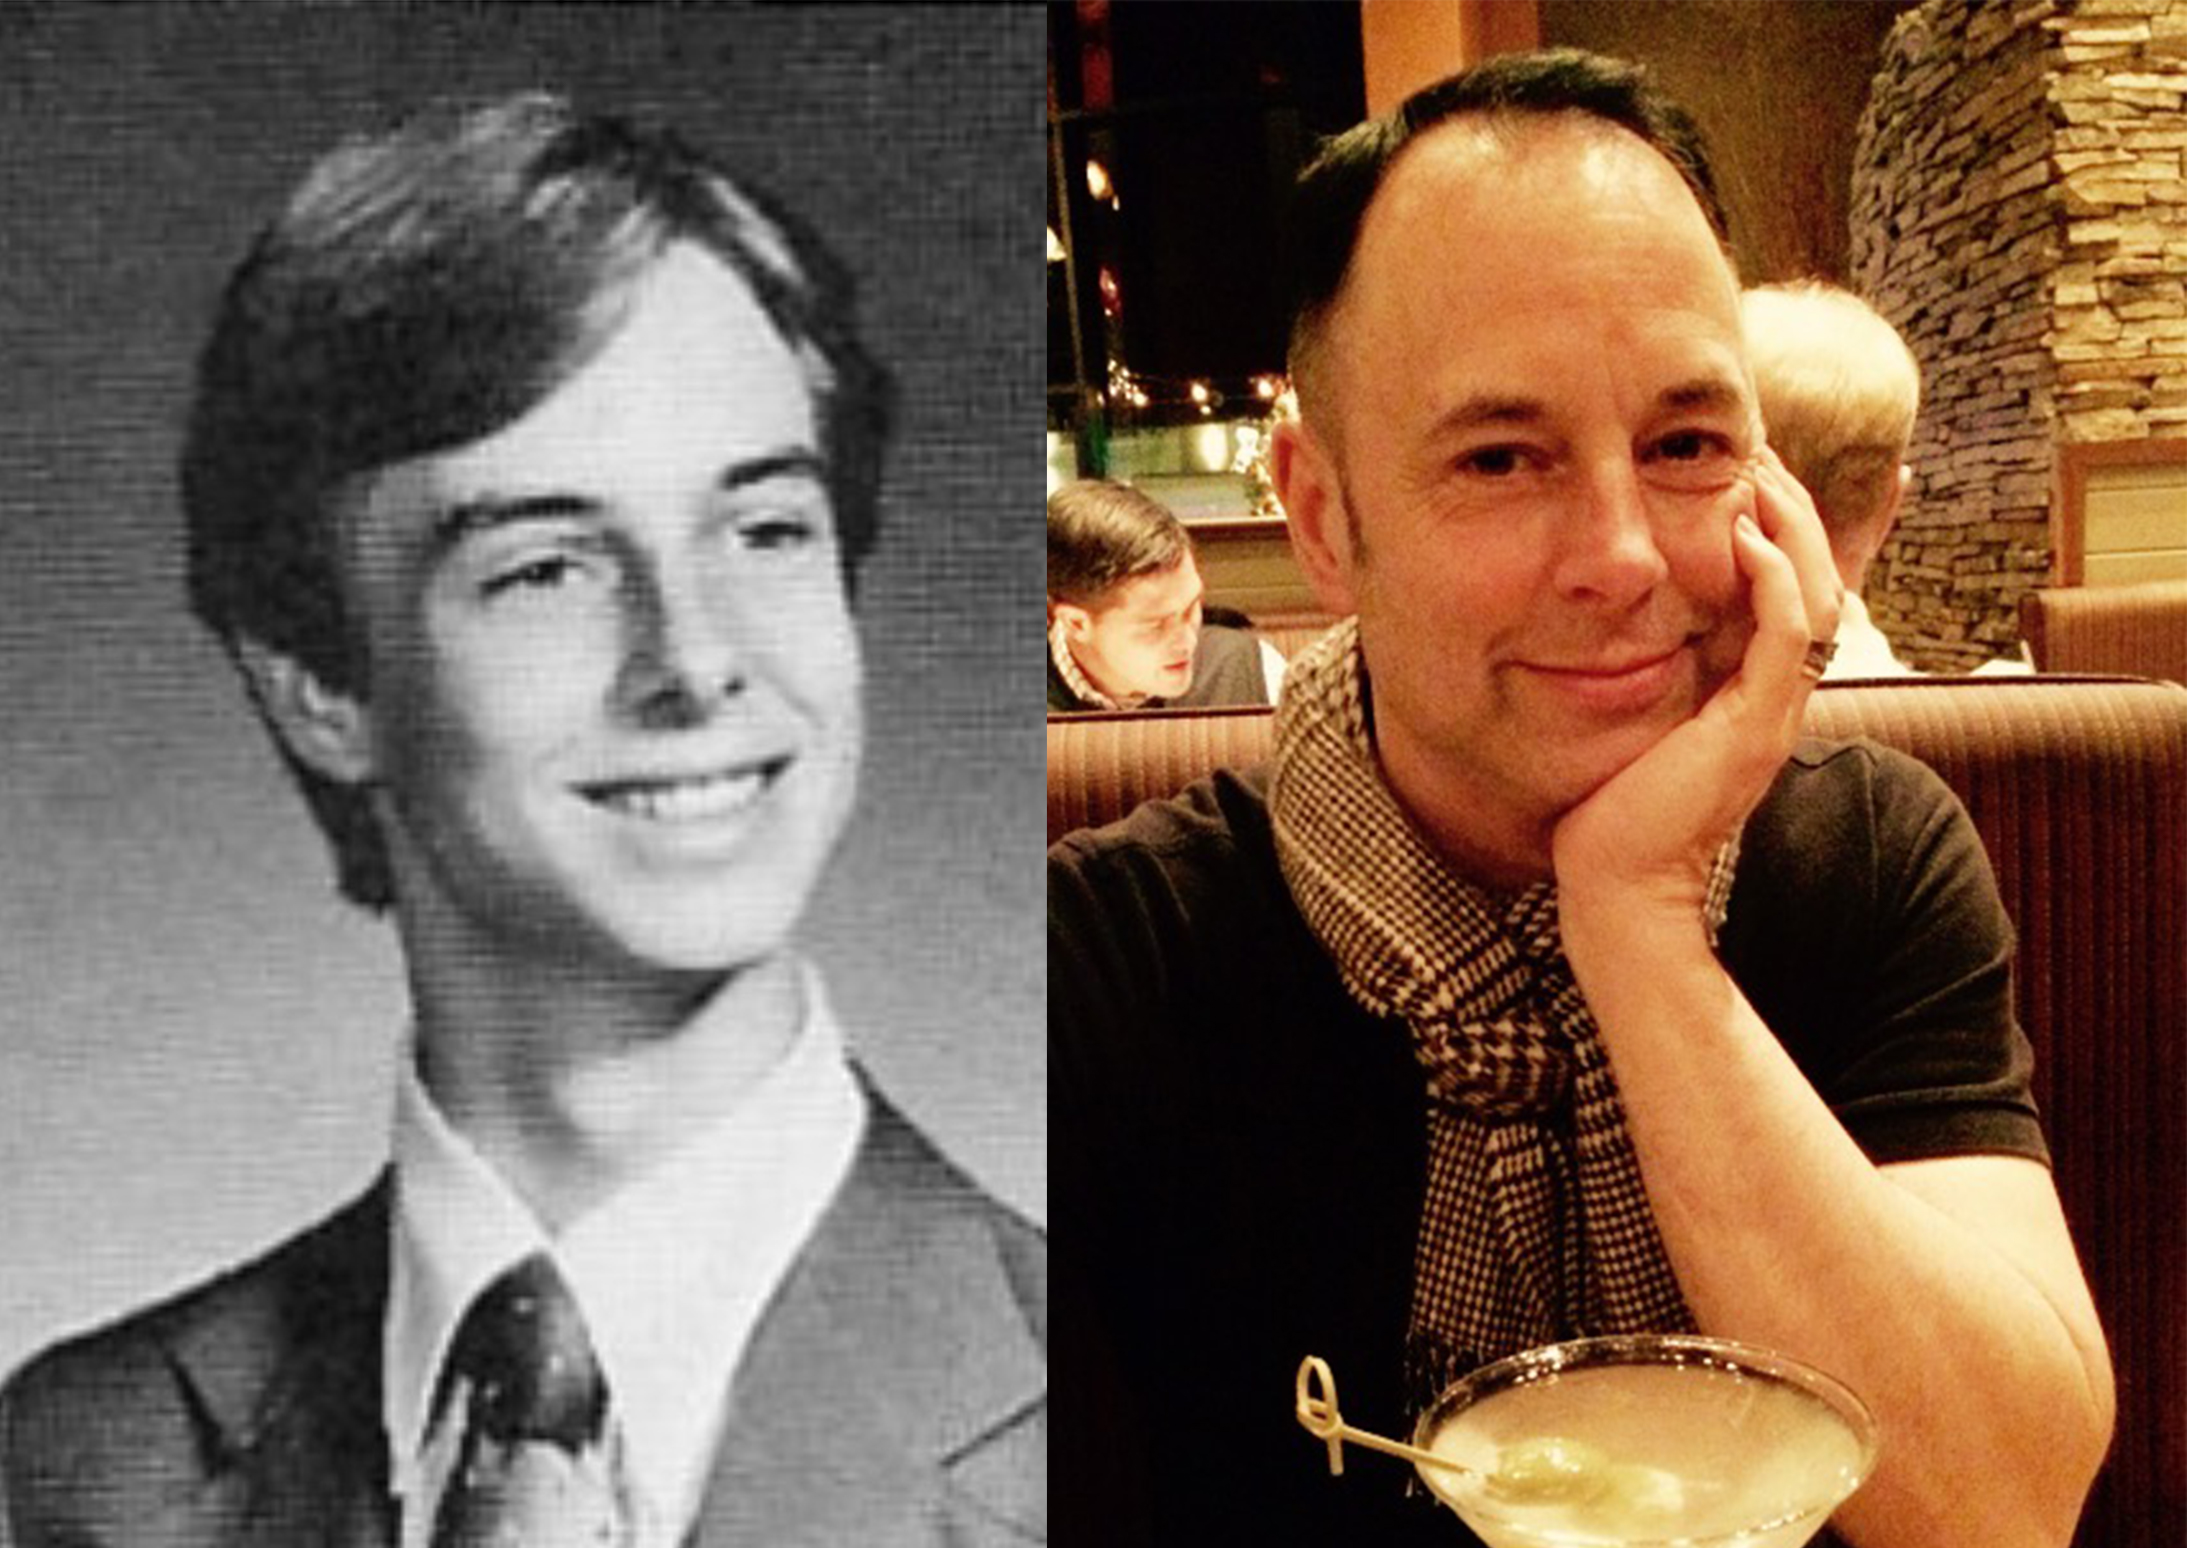 Bill Franklin, Northwest High School Class of 1980, as a high-schooler (left) and as an adult (right).